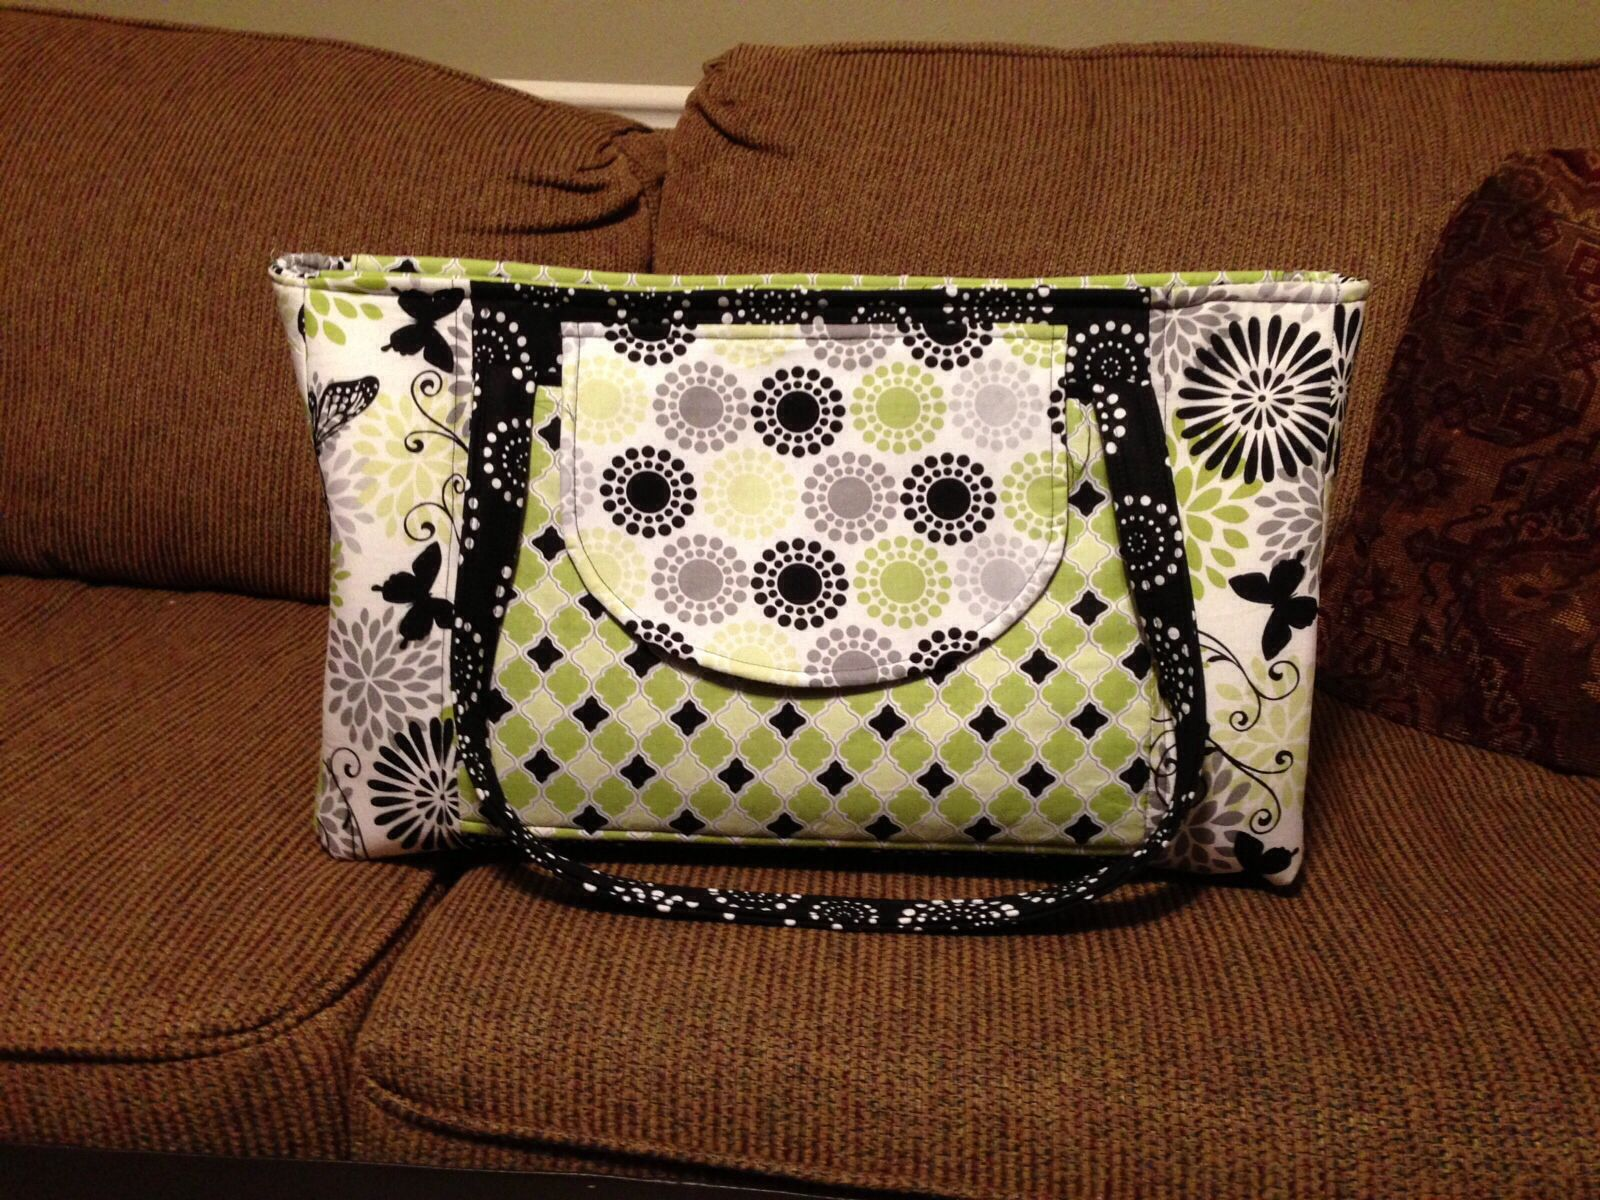 22864b7e0808ec Girly Gym Bag. Quiltsillustrated.com | Quiltsillustrated, Inc ...